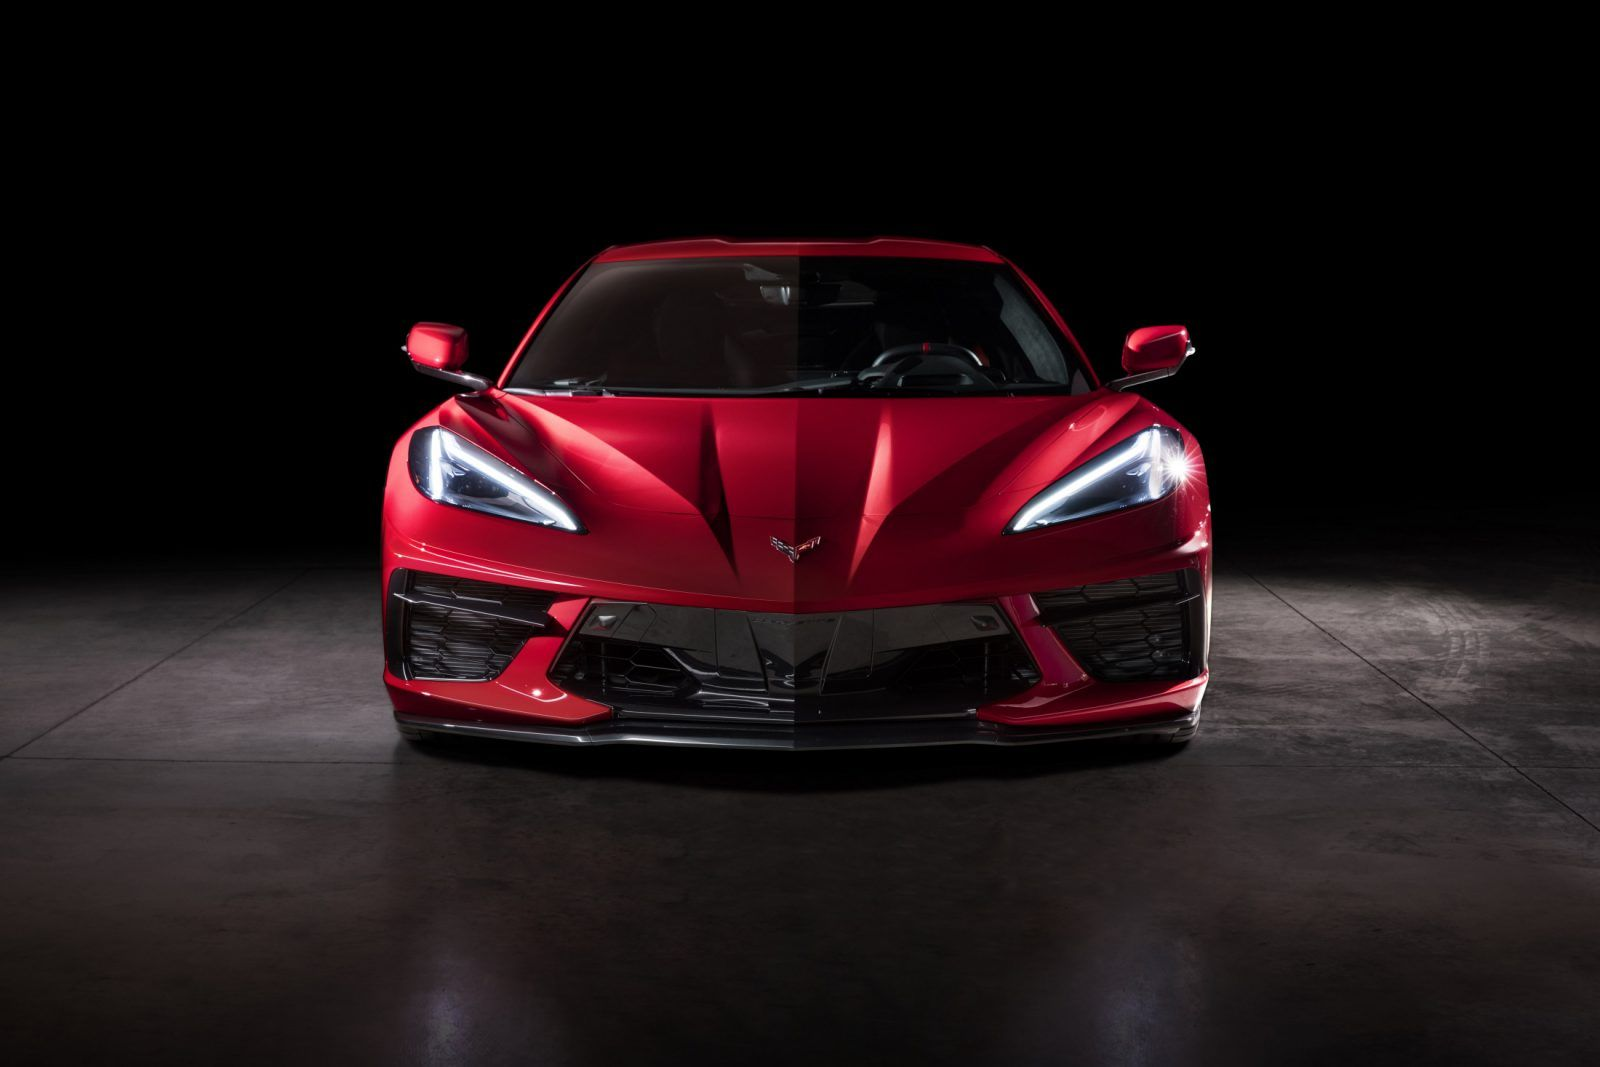 Zora S Dream Fulfilled Chevrolet Unveils 2020 C8 Corvette Stingray Mid Engine Power And Technology Revamp Iconic Nameplate For New Generation Of Sports Car Bu Chevrolet Corvette Stingray Corvette Stingray Chevrolet Corvette